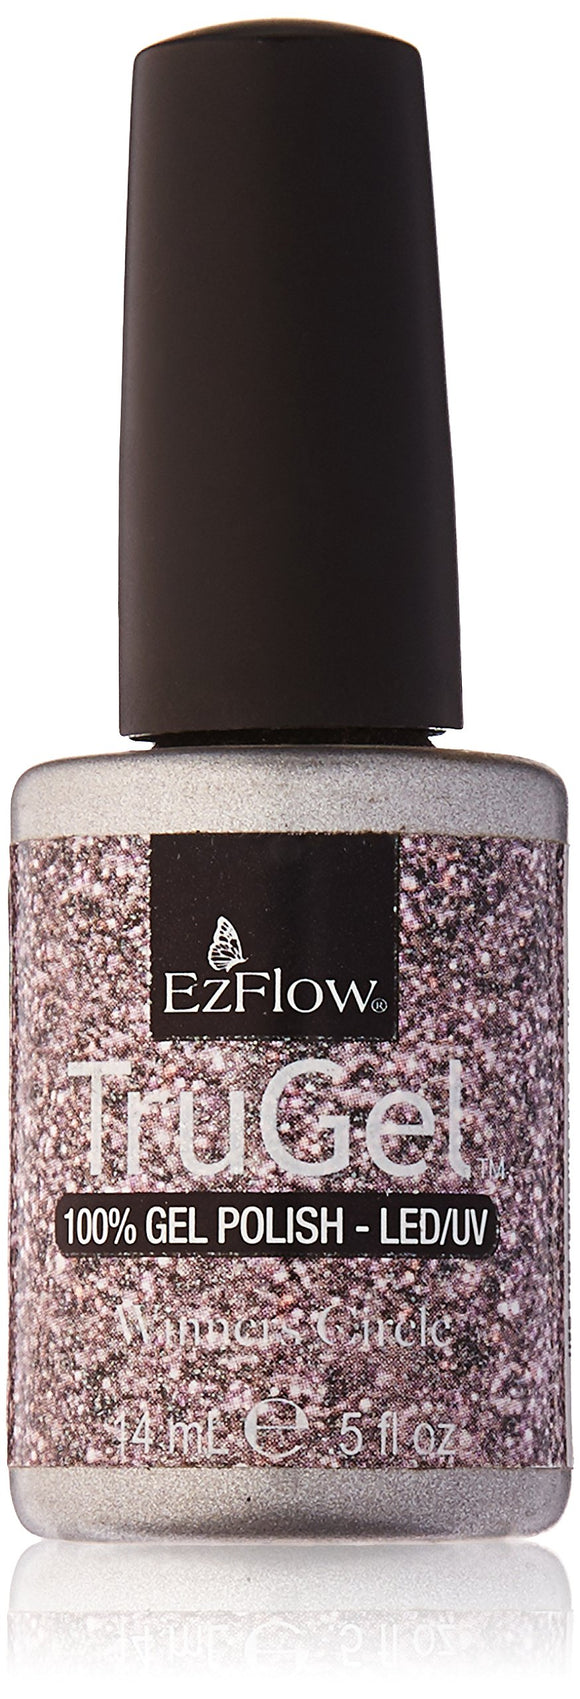 Ez Flow TruGel LED/UV Gel Polish - 14 mL (Winners Circle - EZTG42403)